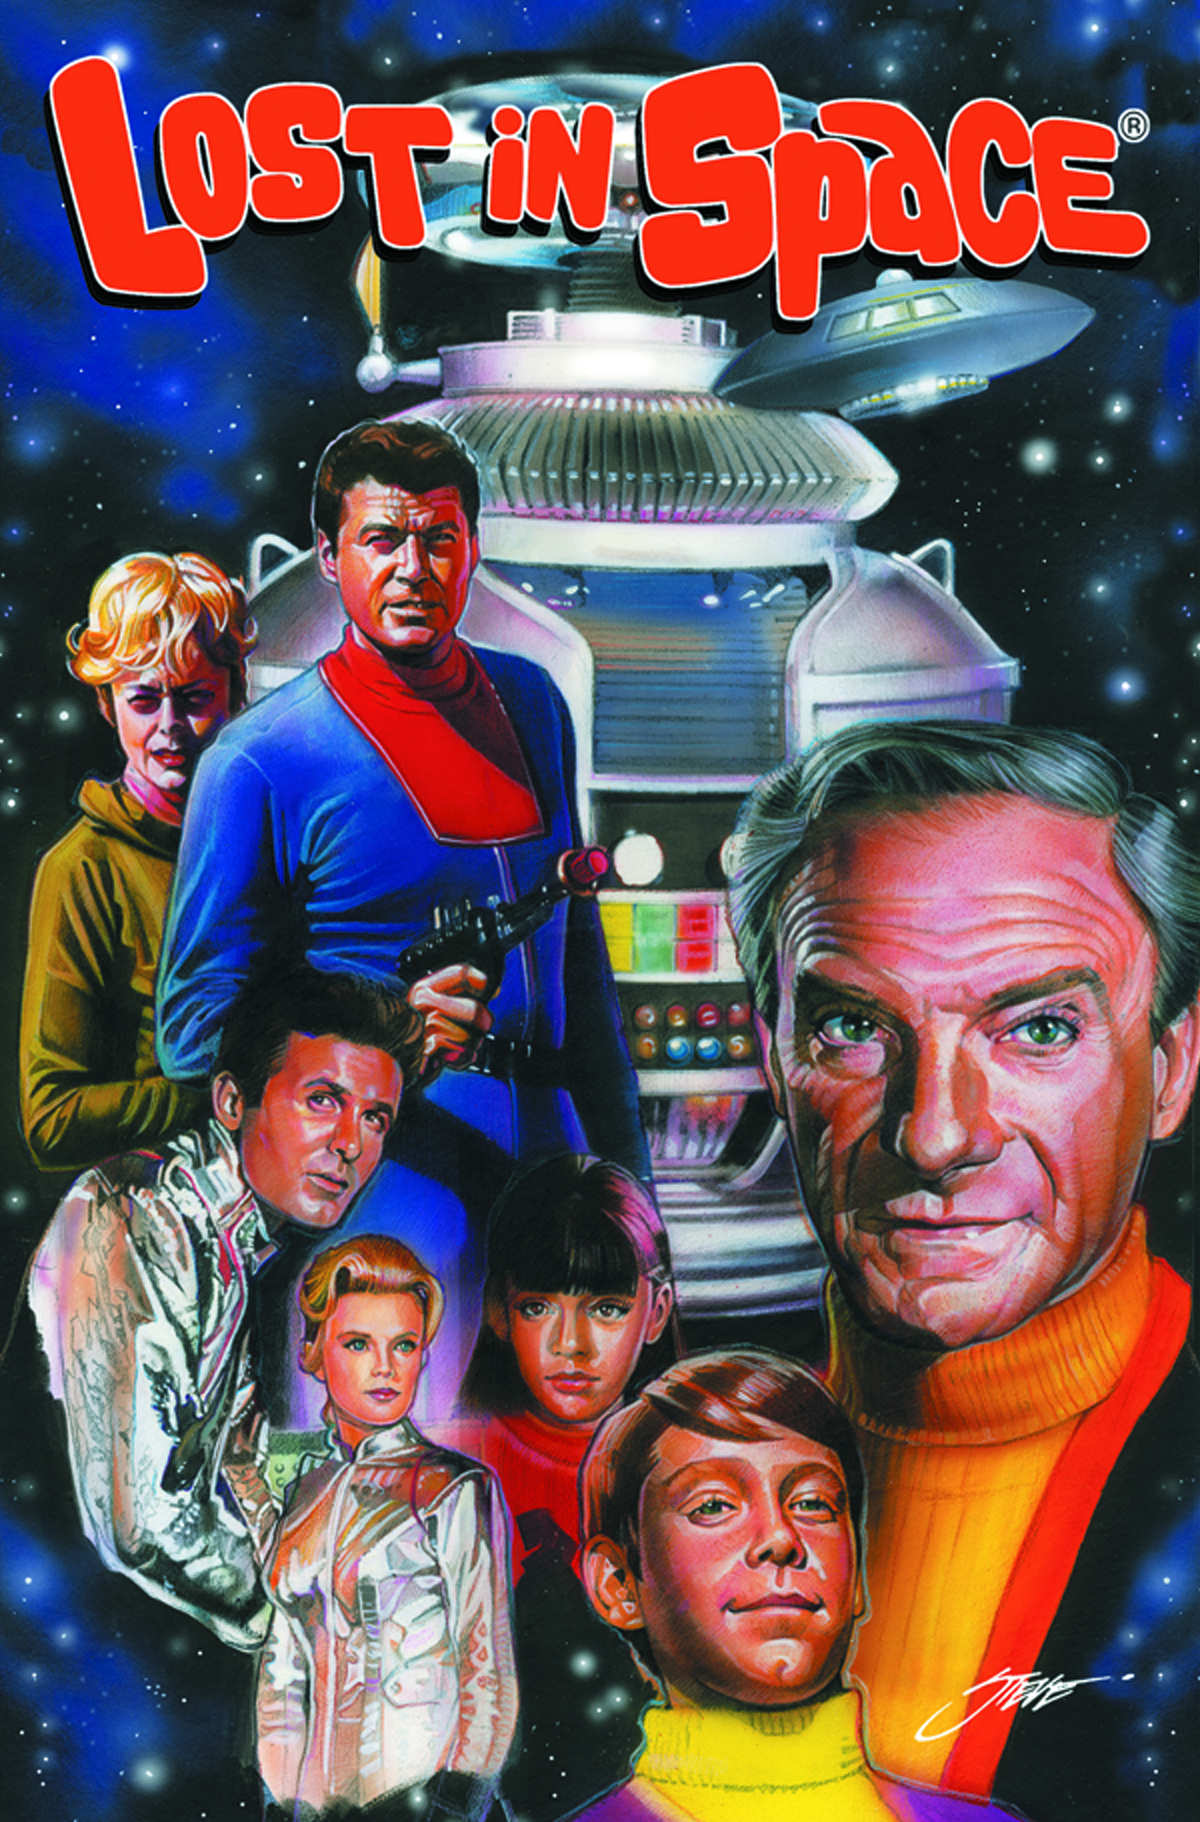 IRWIN ALLEN LOST IN SPACE #1 CVR A STANLEY